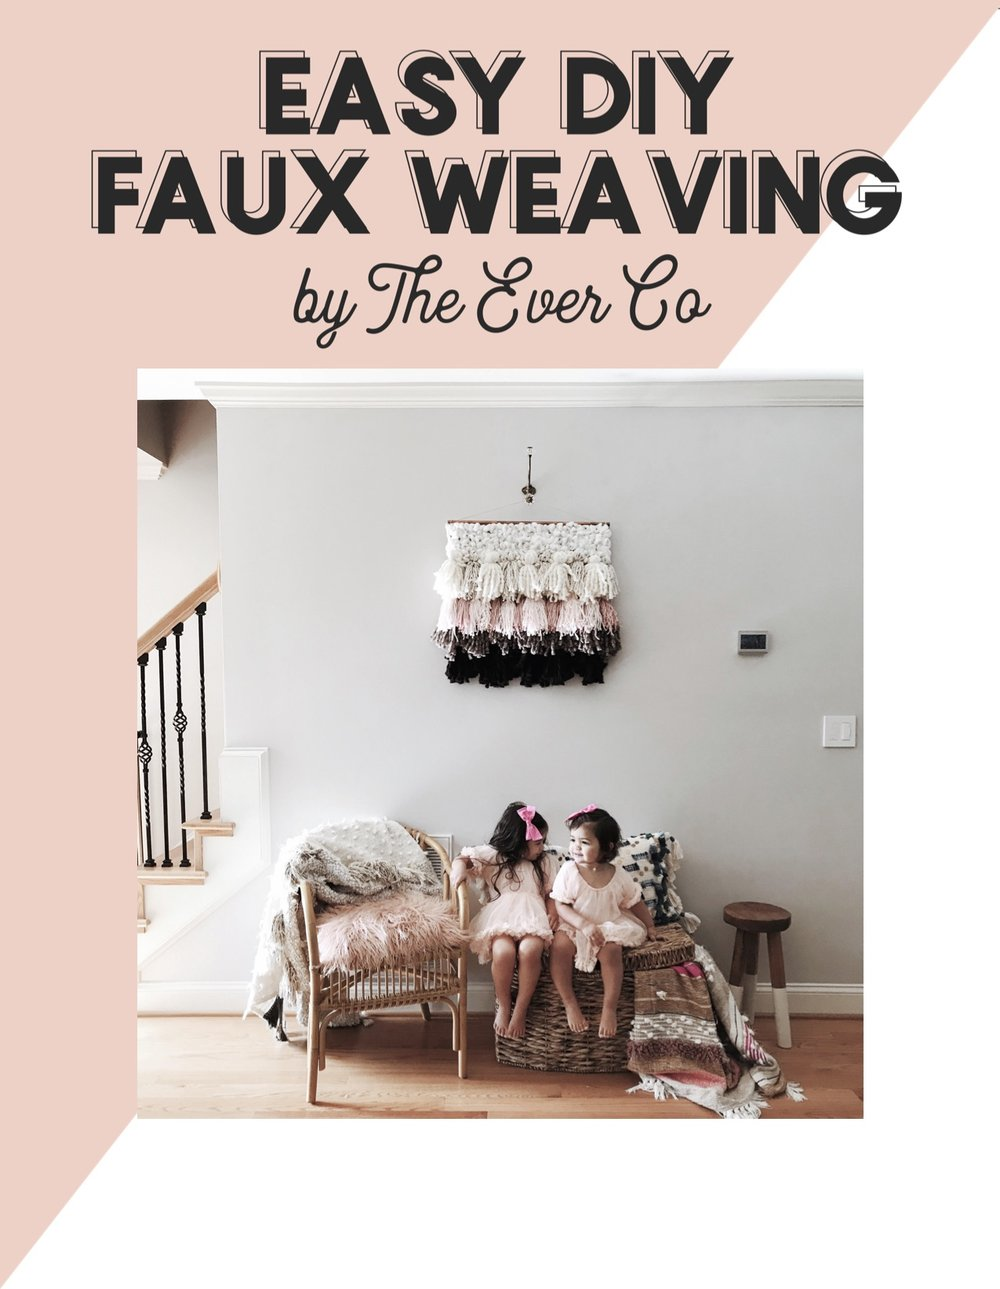 faux weaving copy.jpg